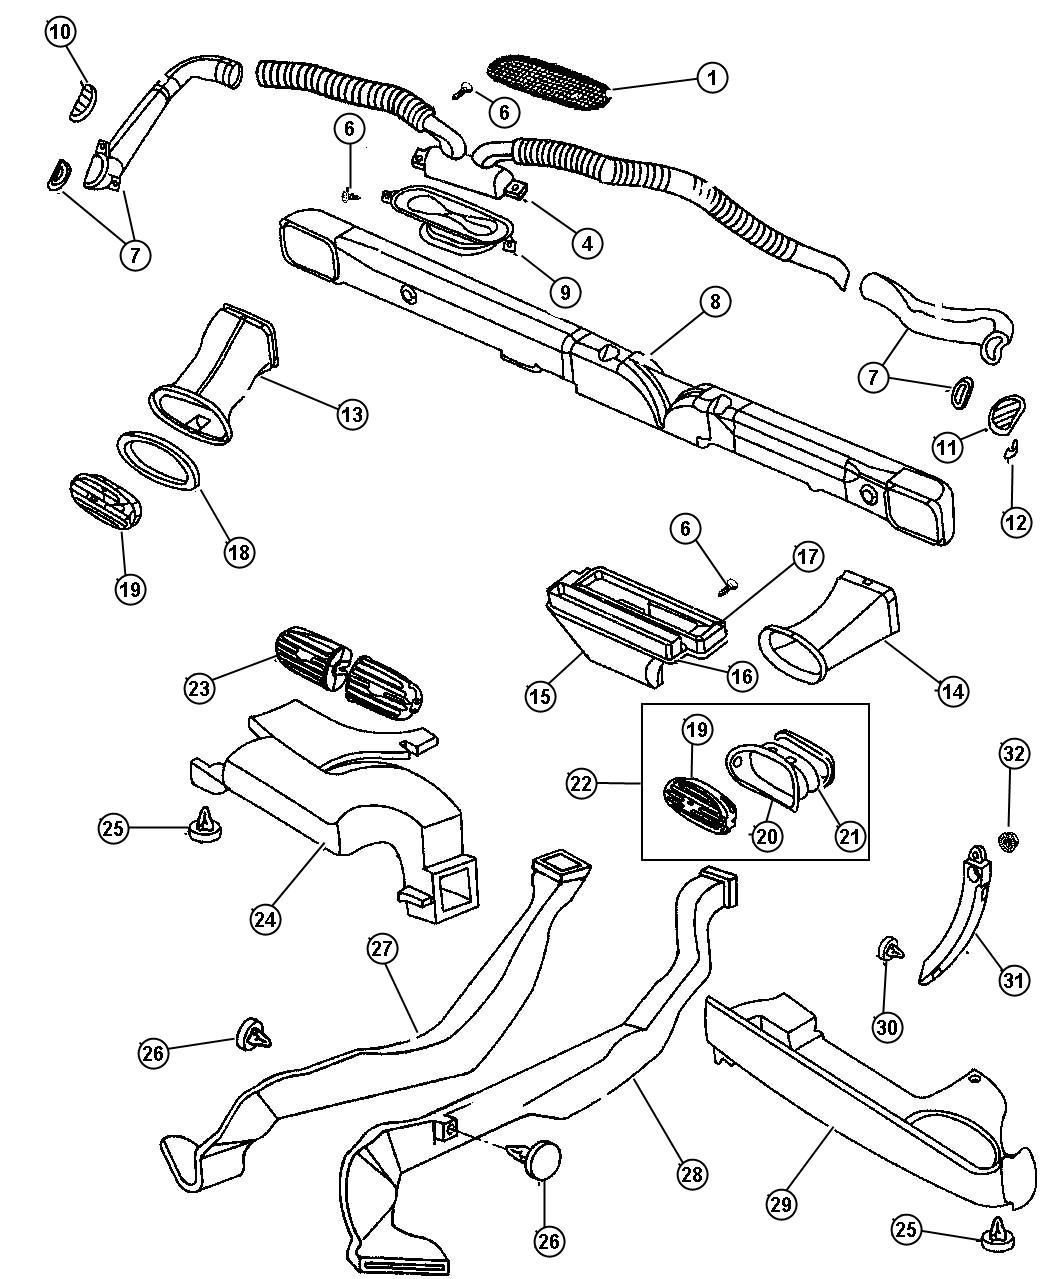 Chrysler Cirrus Duct Heat Distribution Rear Right Rear